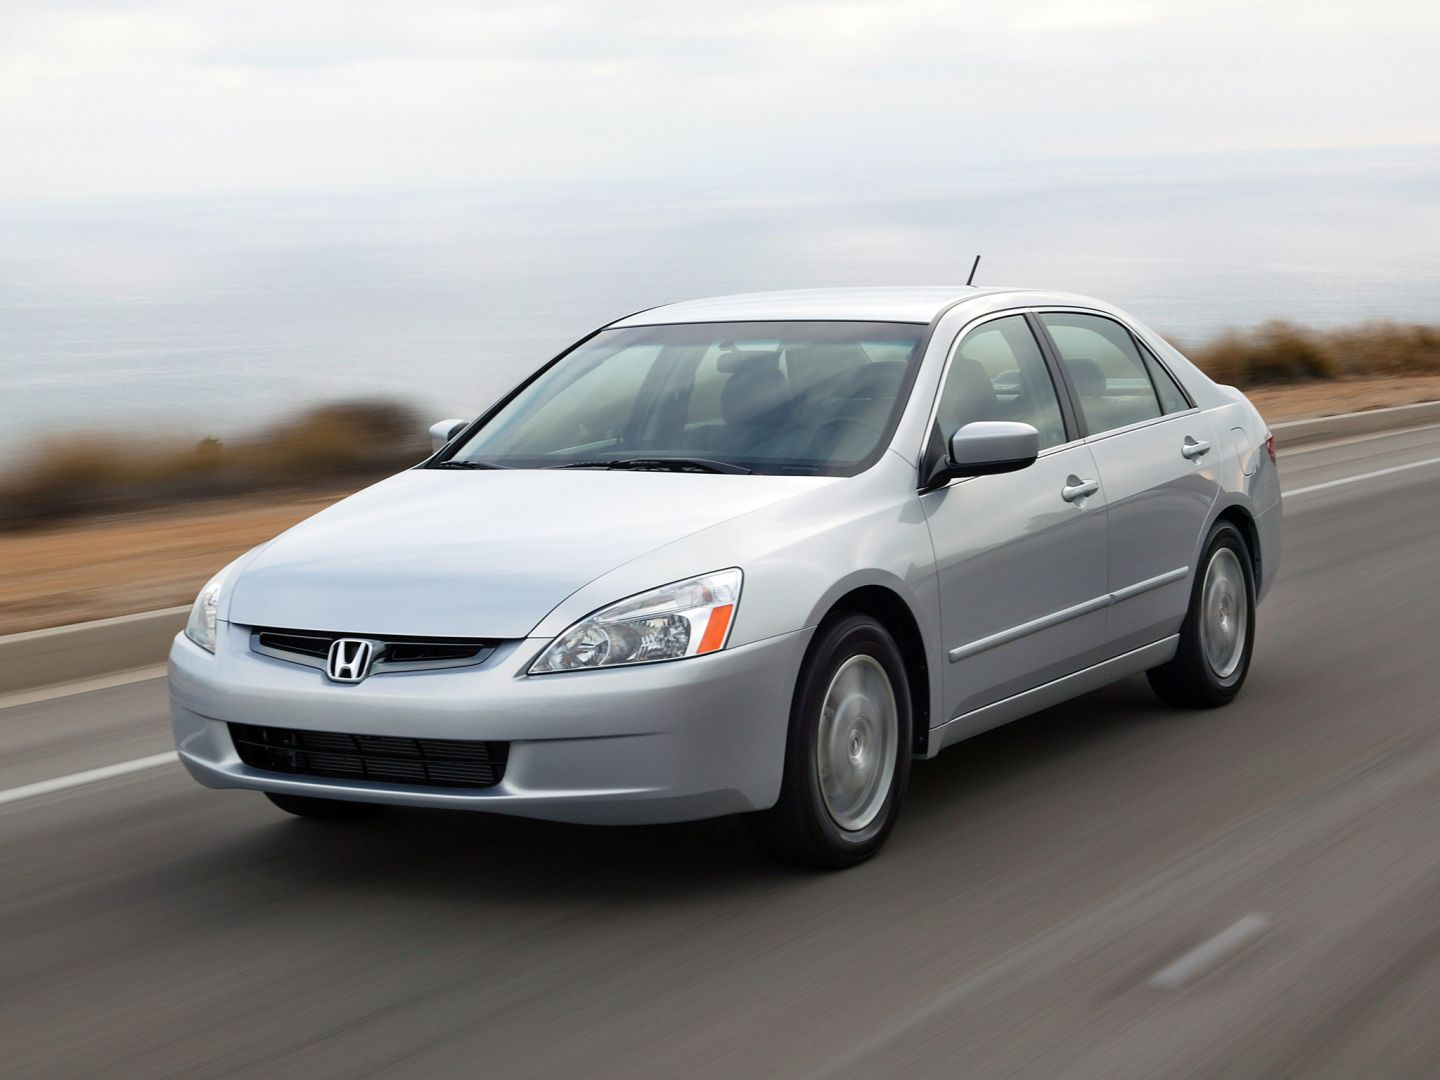 HONDA Accord Sedan US specs & photos - 2005, 2006, 2007 - autoevolution